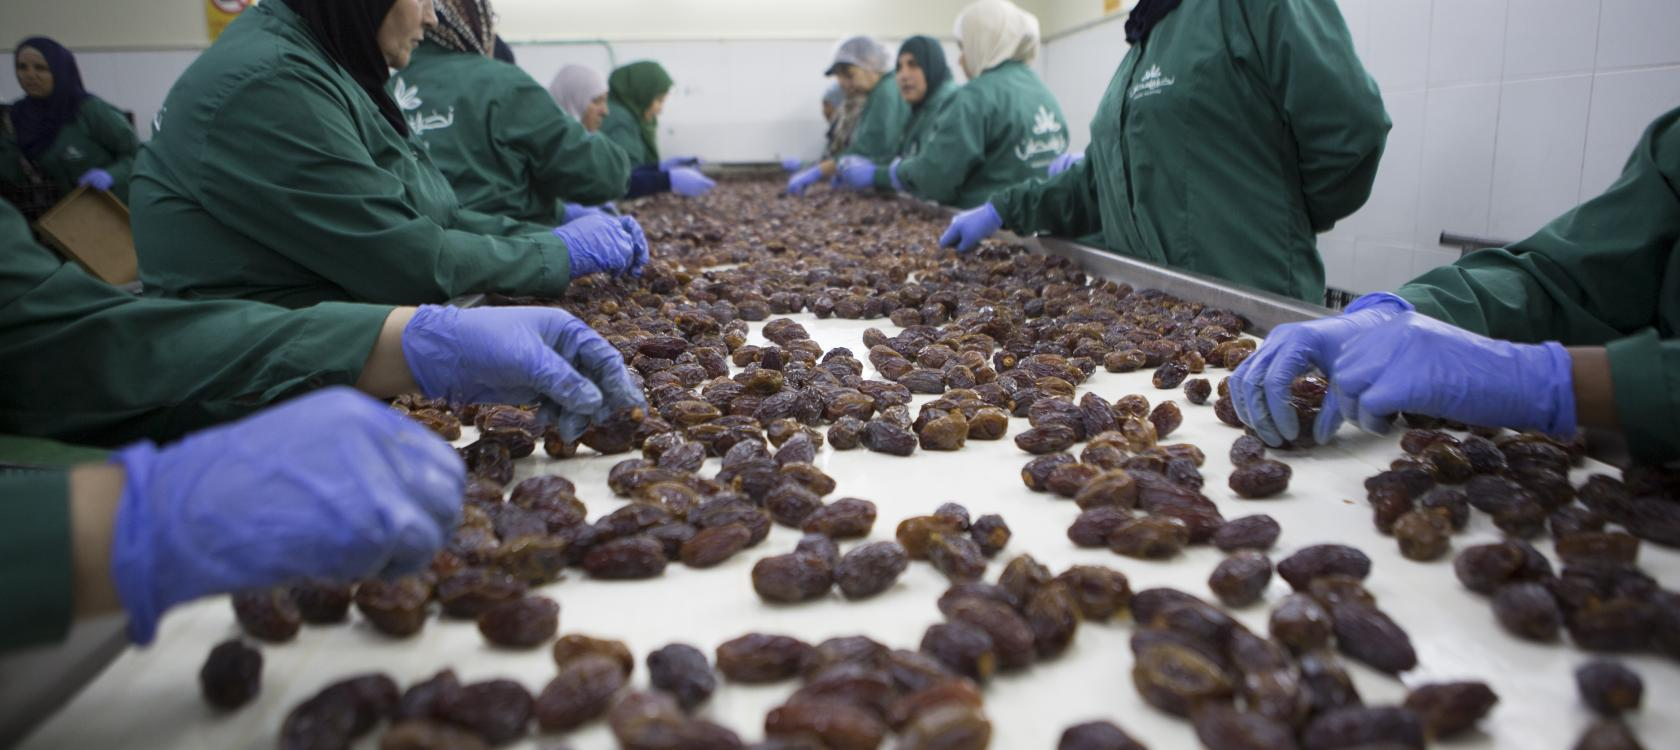 Processing dates factories, Nakheel, Palestine